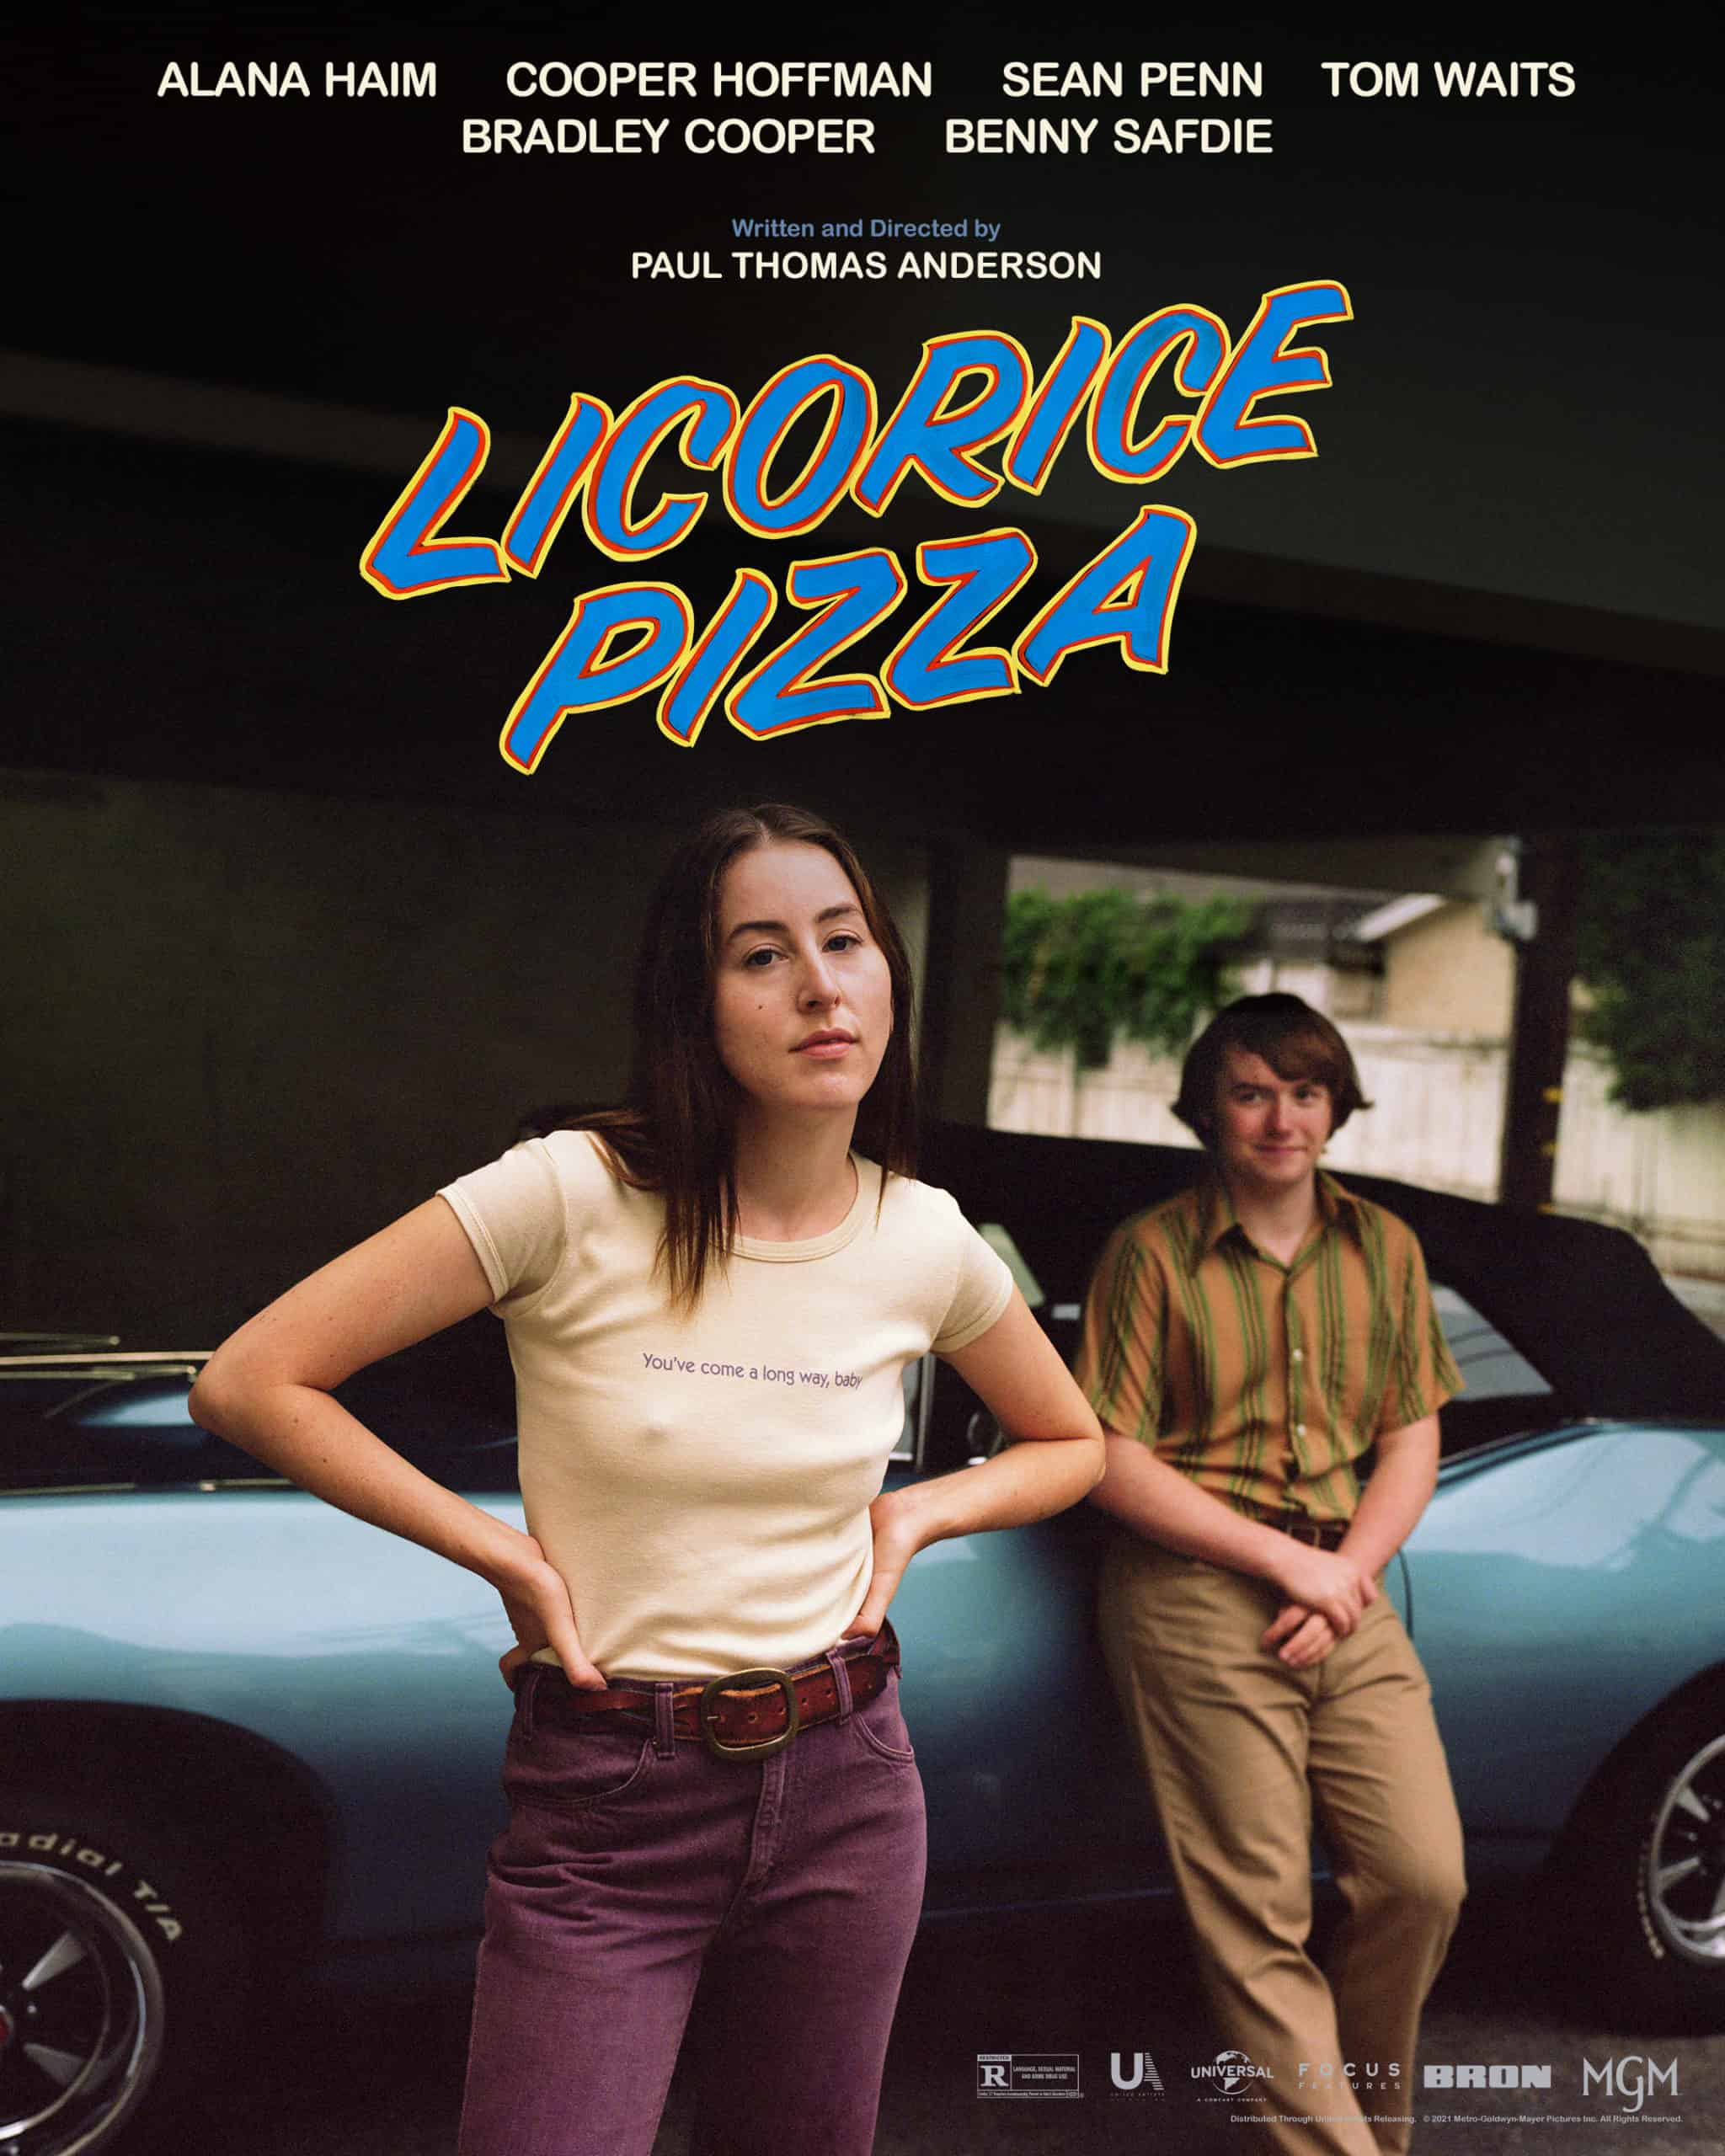 Licorice Pizza gets a trailer! PTA to save Thanksgiving 2021 with Haim 2